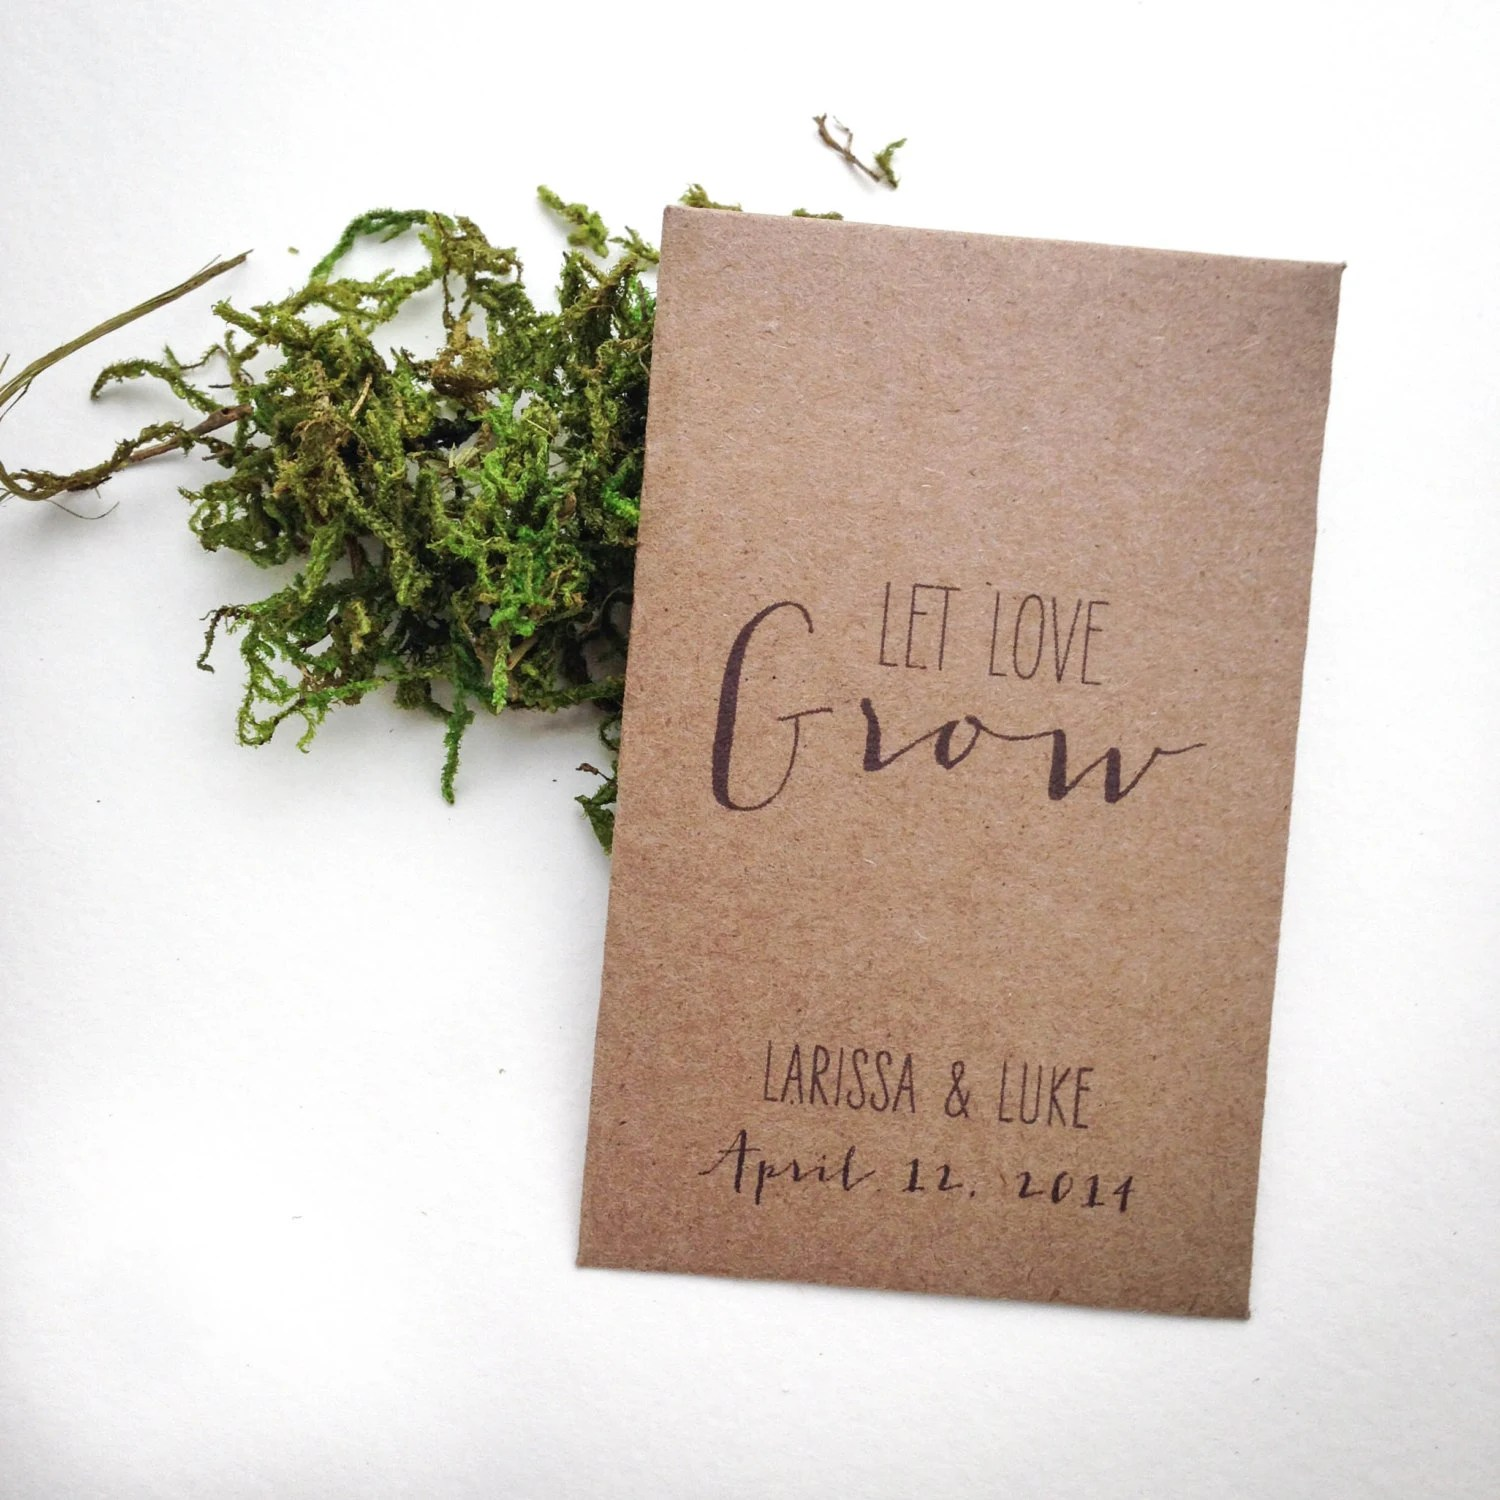 Rustic Personalized Seed Packet Wedding Favors, Let Love